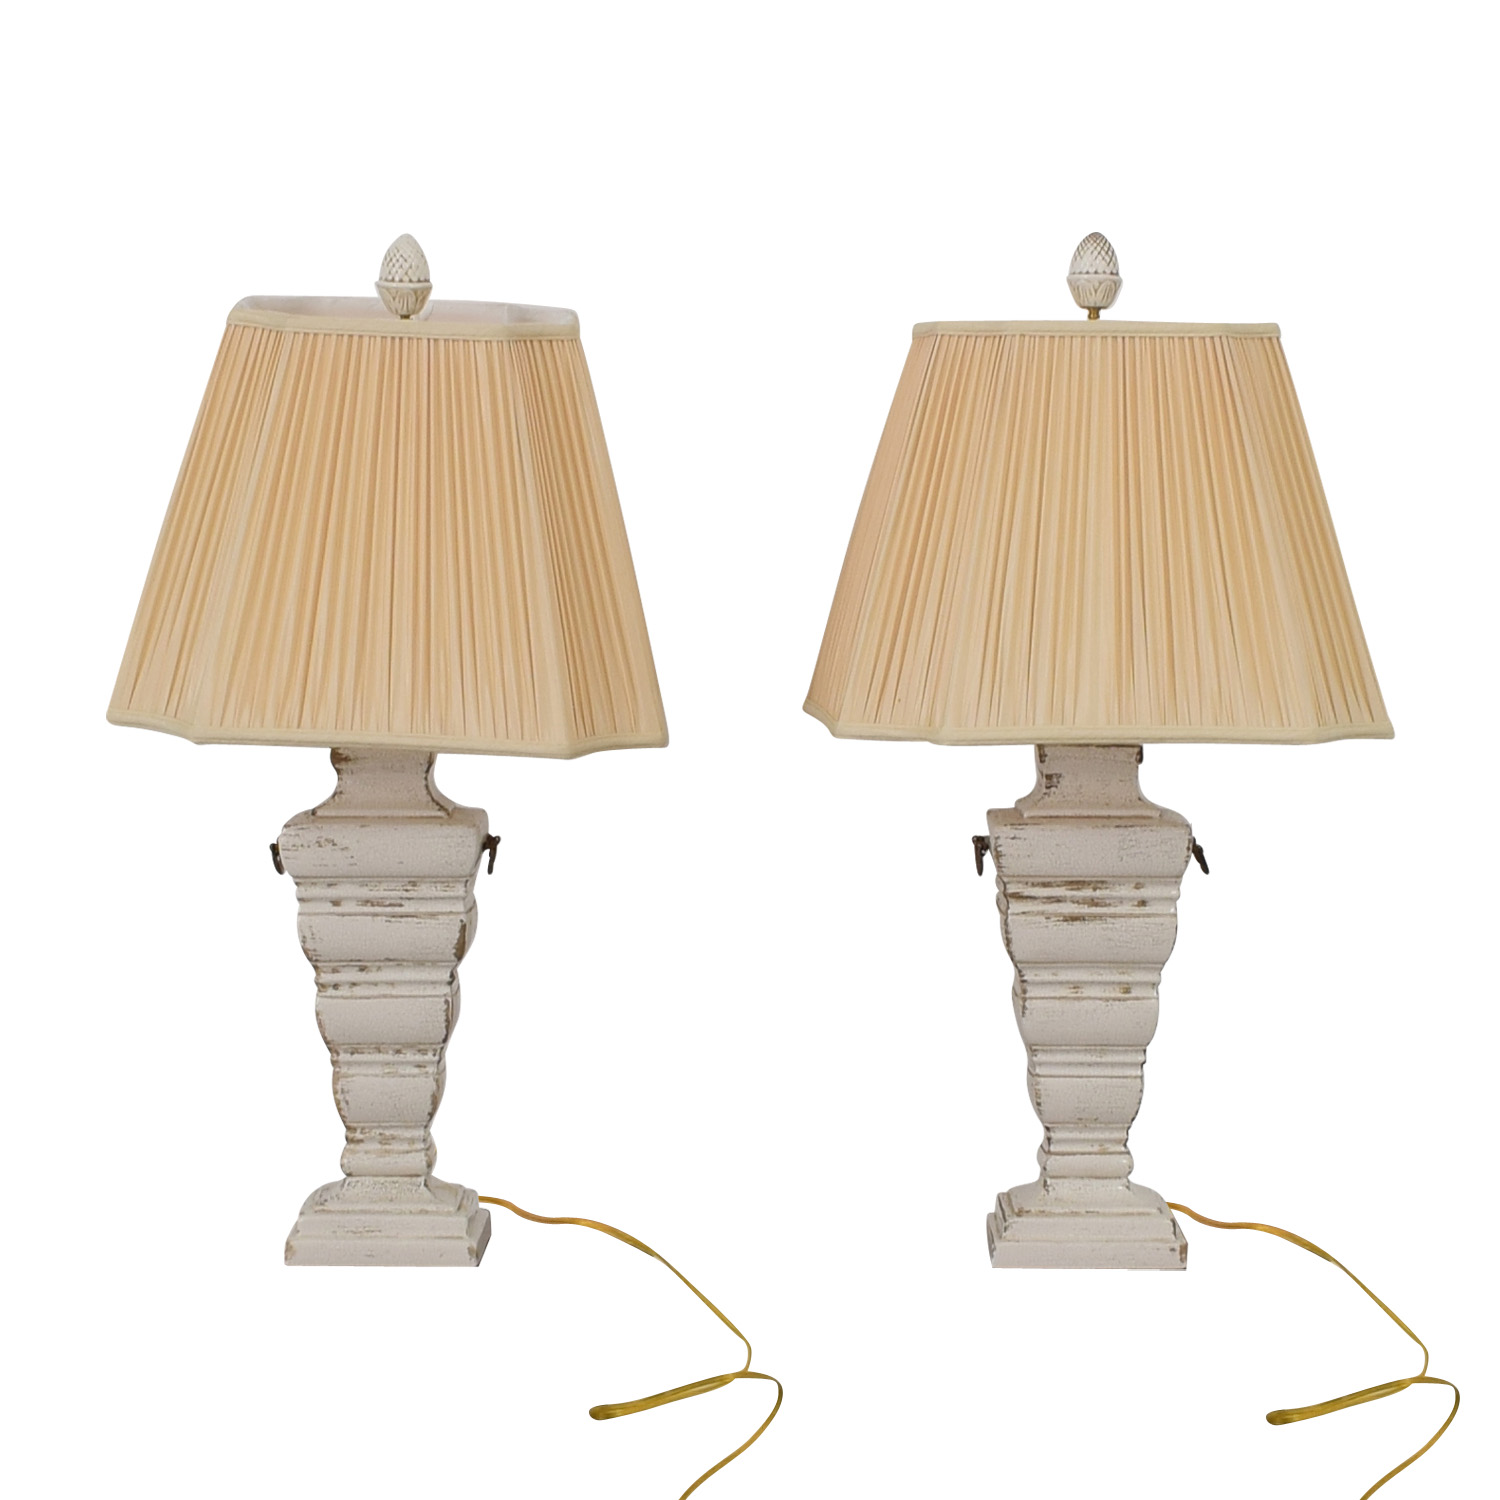 The Bradburn Gallery The Bradburn Gallery Cream Table Lamps coupon